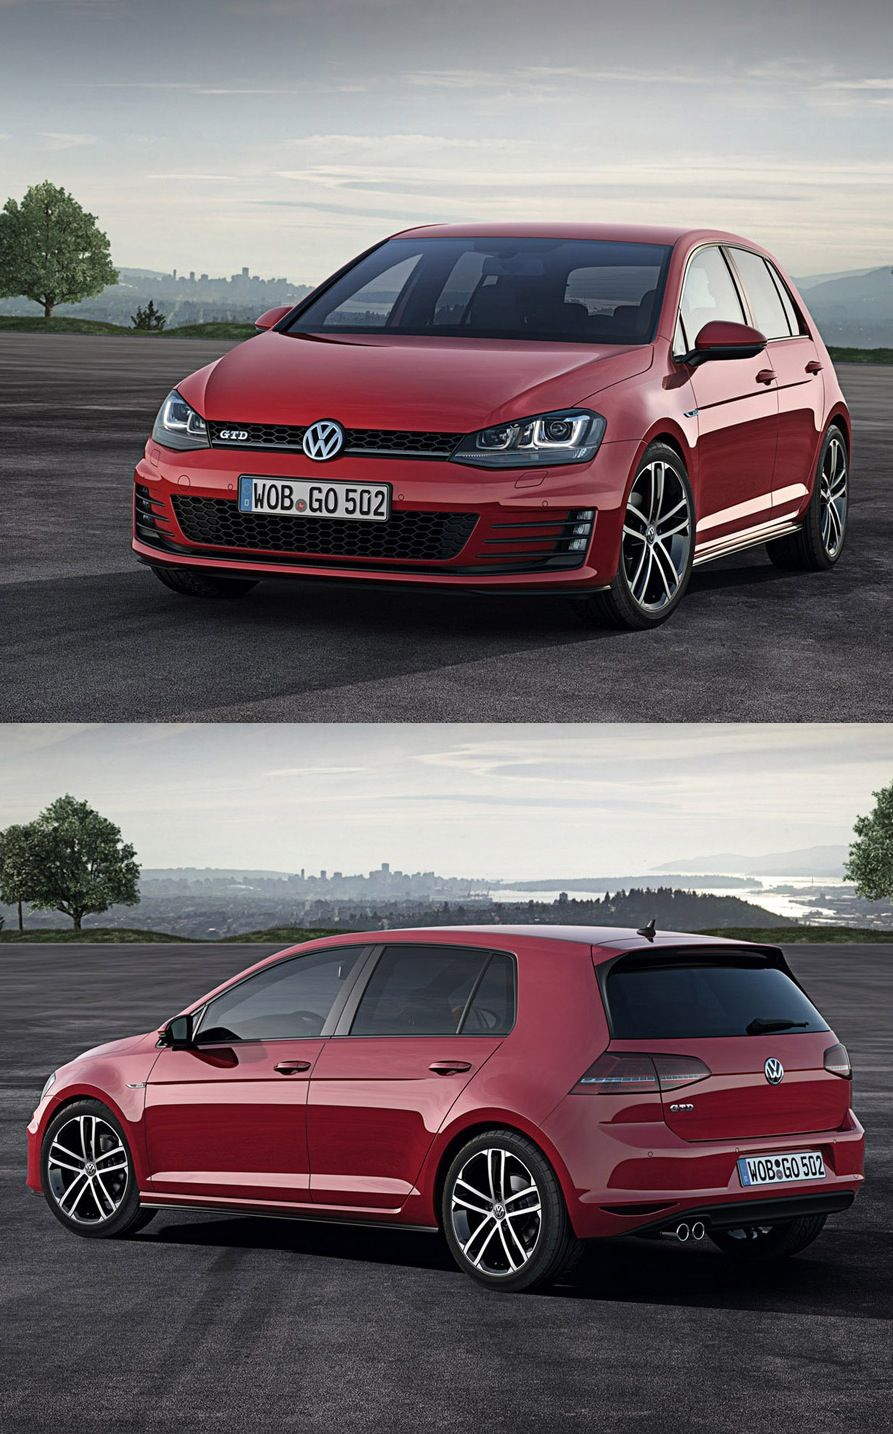 2019 Volkswagen Golf Gti Sport Review A Fast And Flexible 2 0 L With Turbo Gasoline Engine Is Magnificent Wh